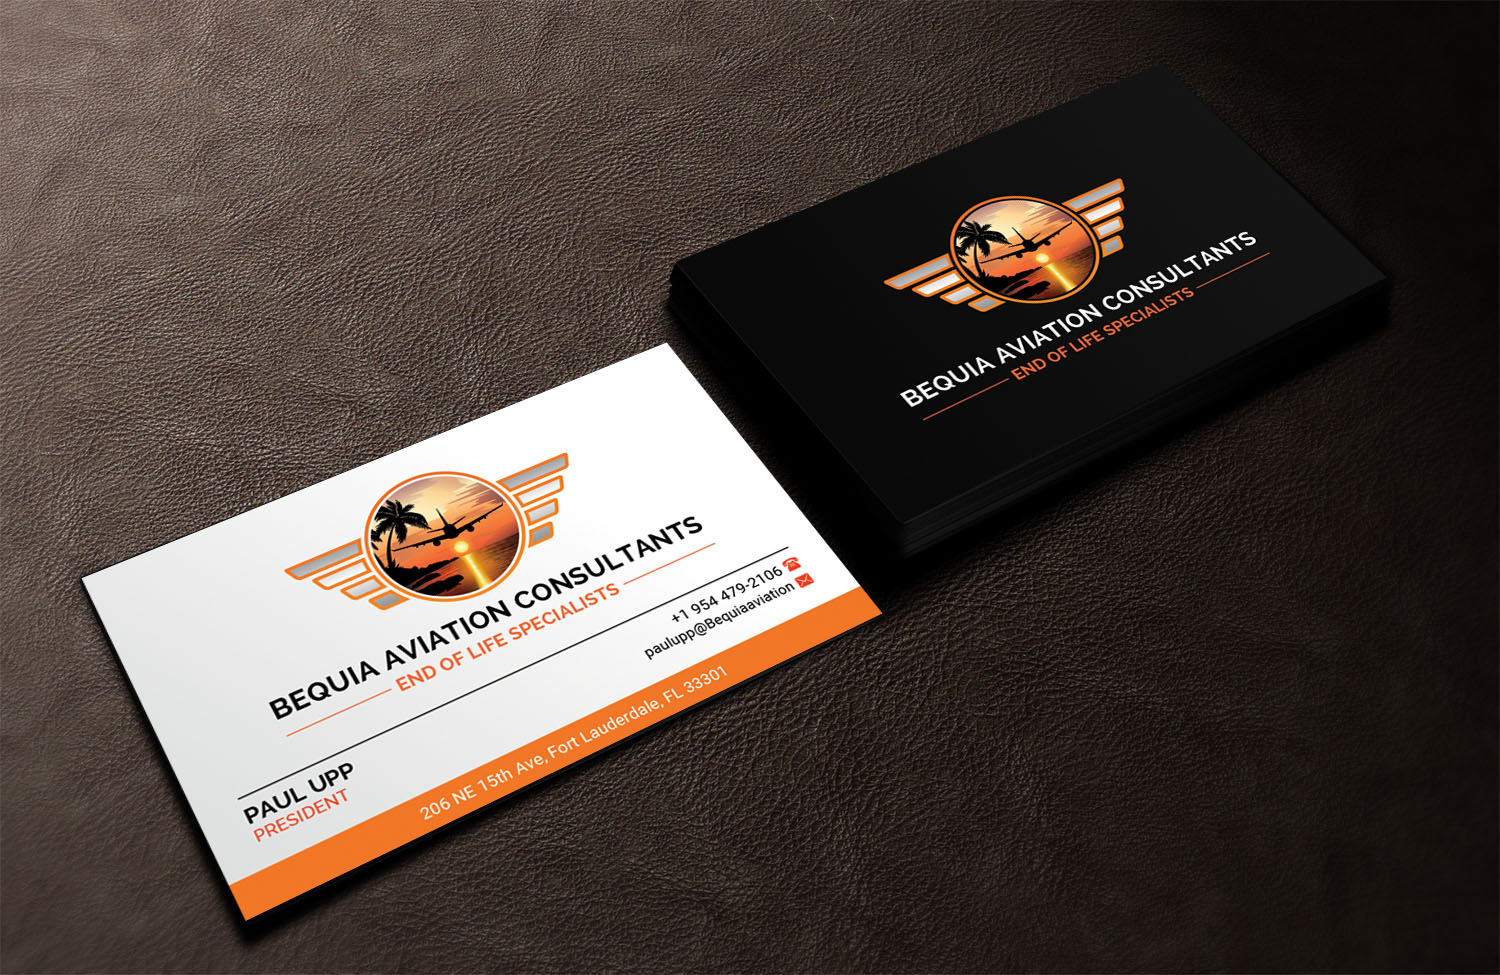 Professional upmarket aviation business card design for bequia business card design by sandaruwan for freedom path marketing design 17694525 colourmoves